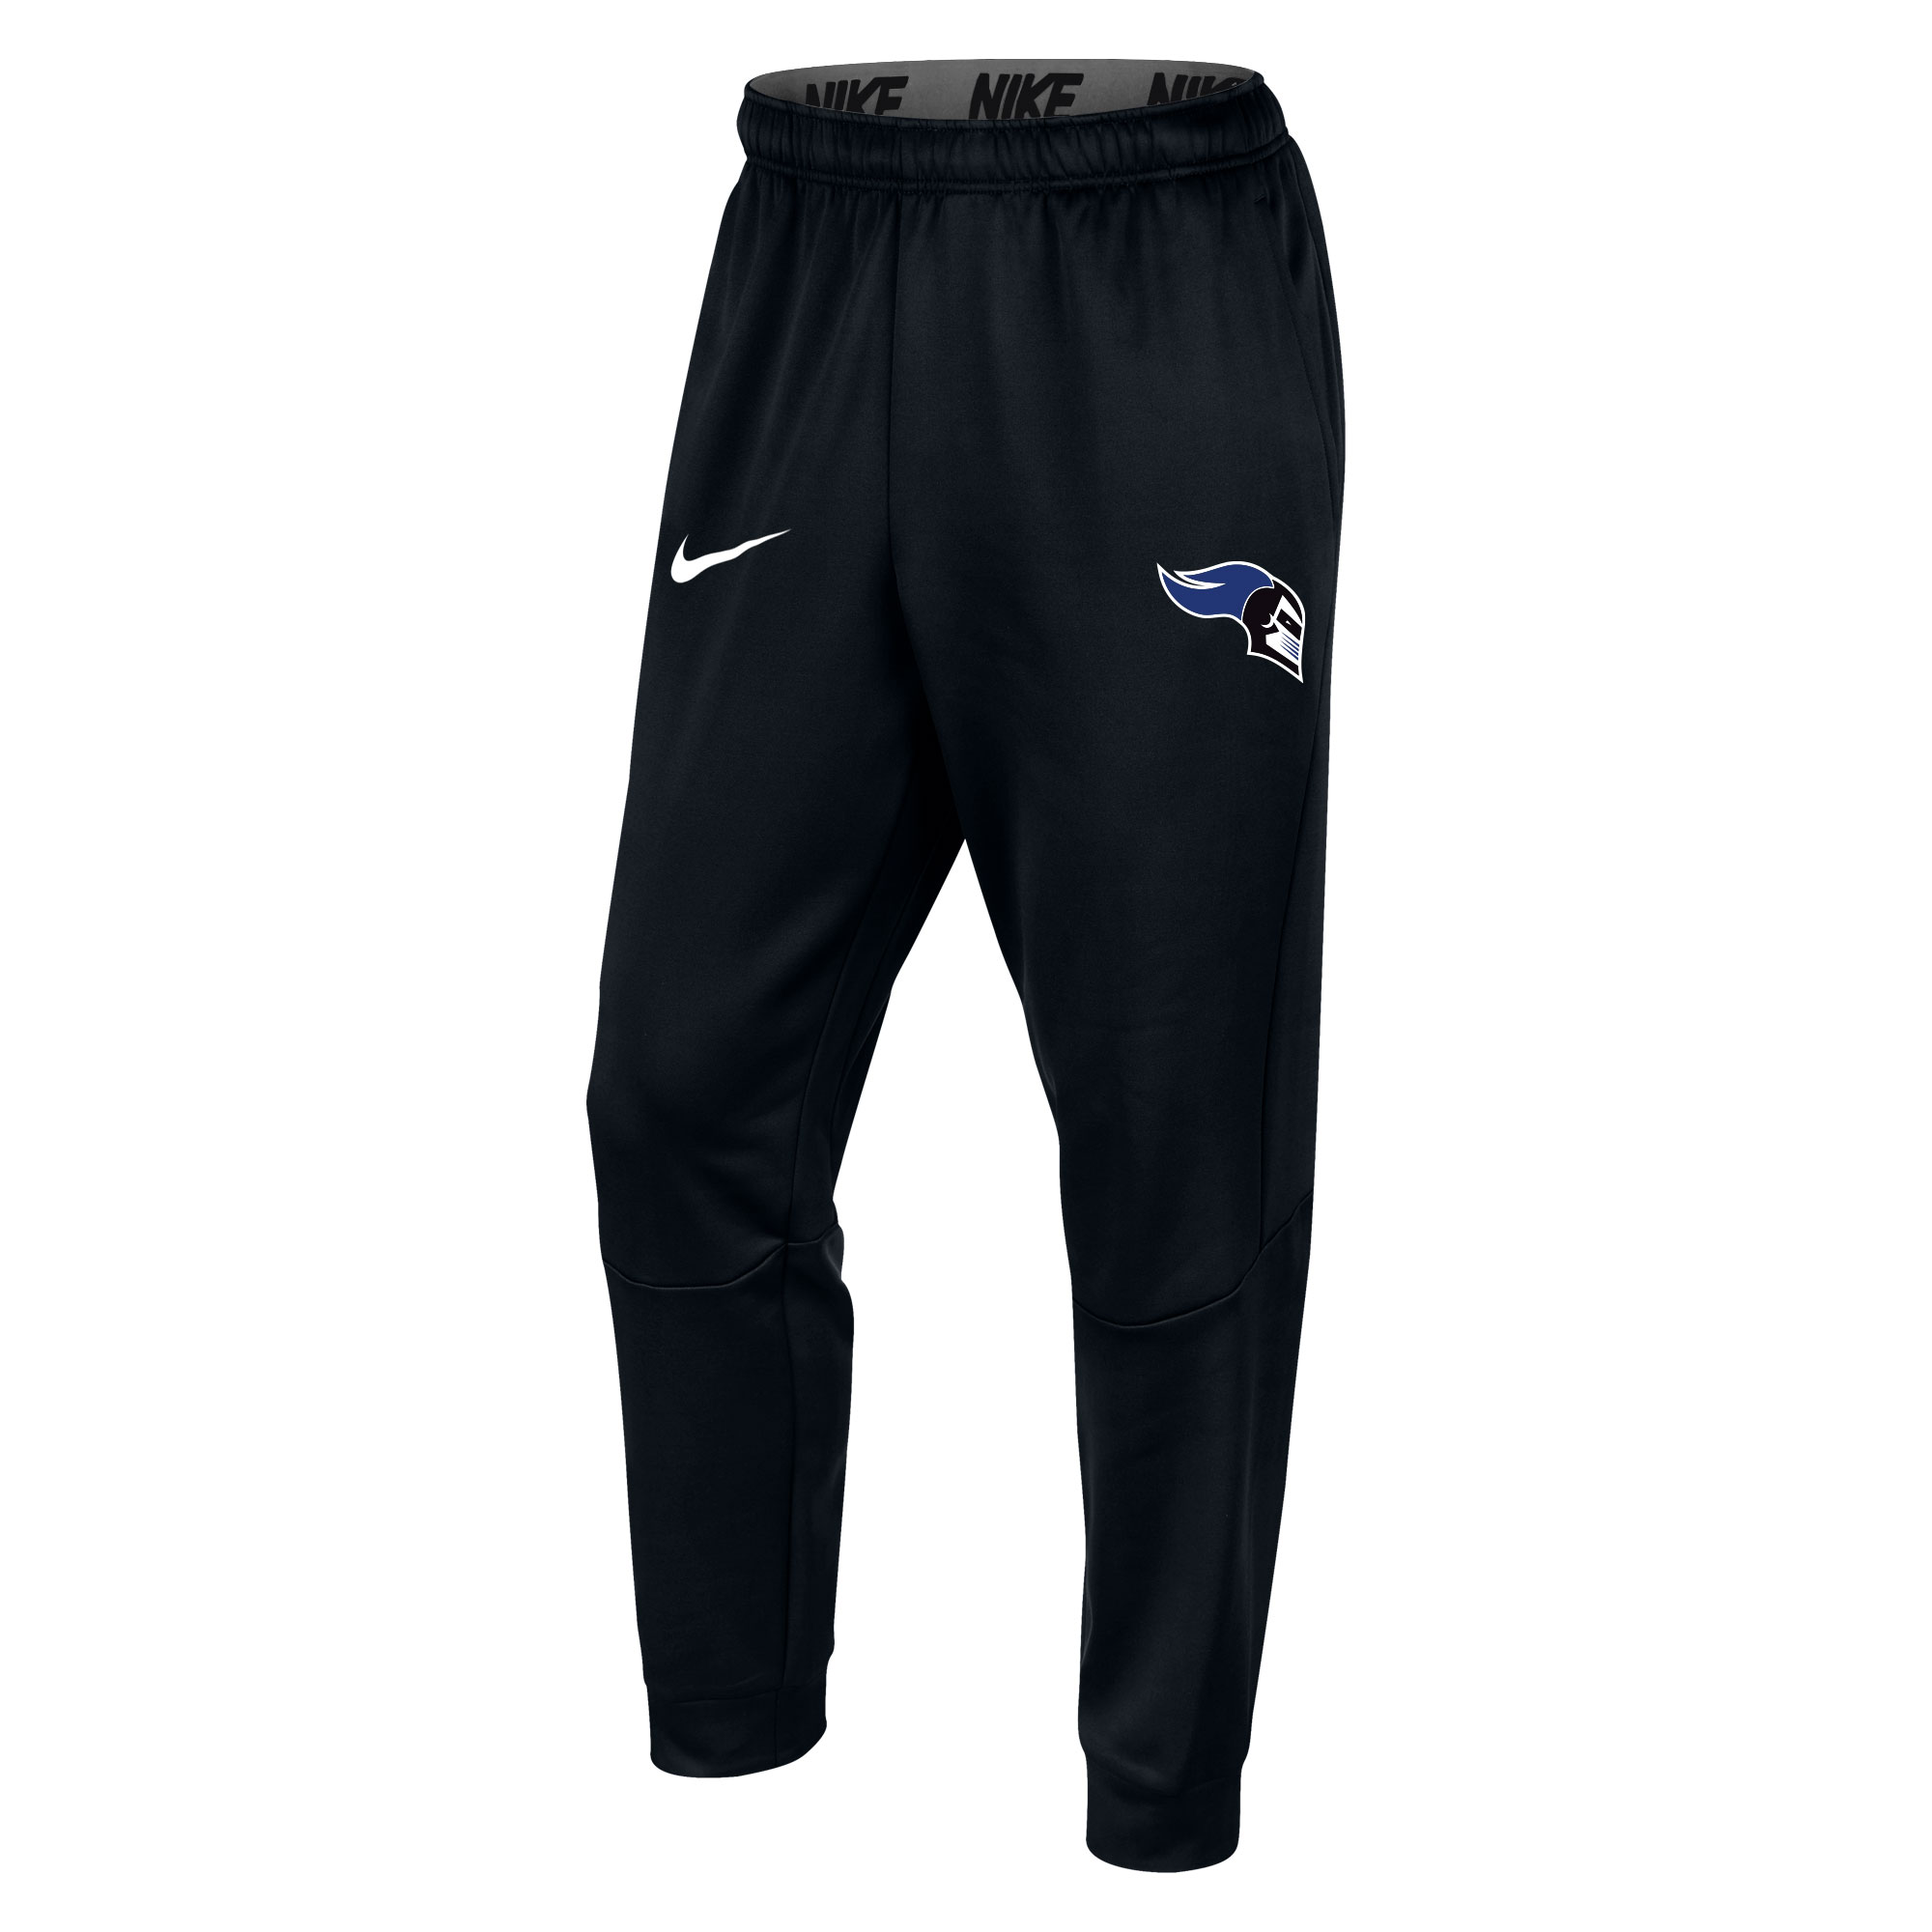 Nike Therma Fit Pant - Black